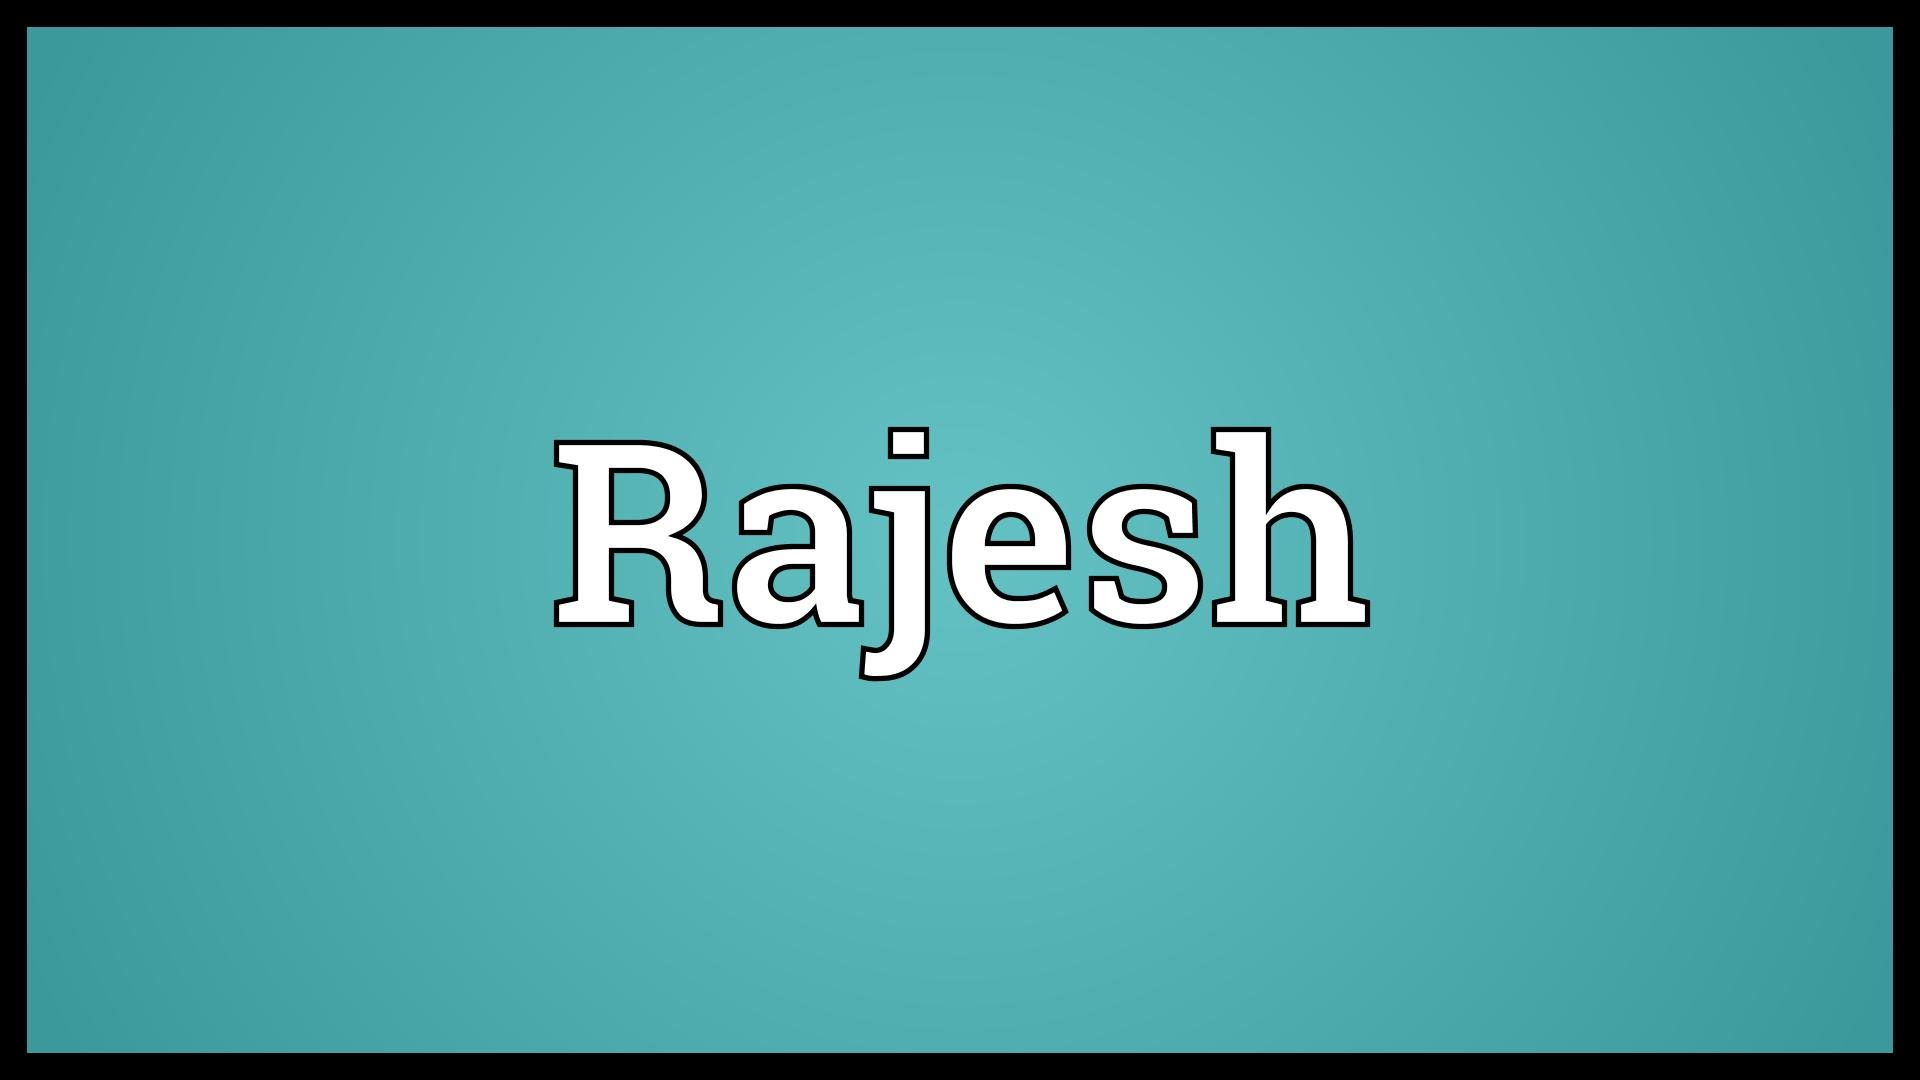 Rajesh Name Wallpaper